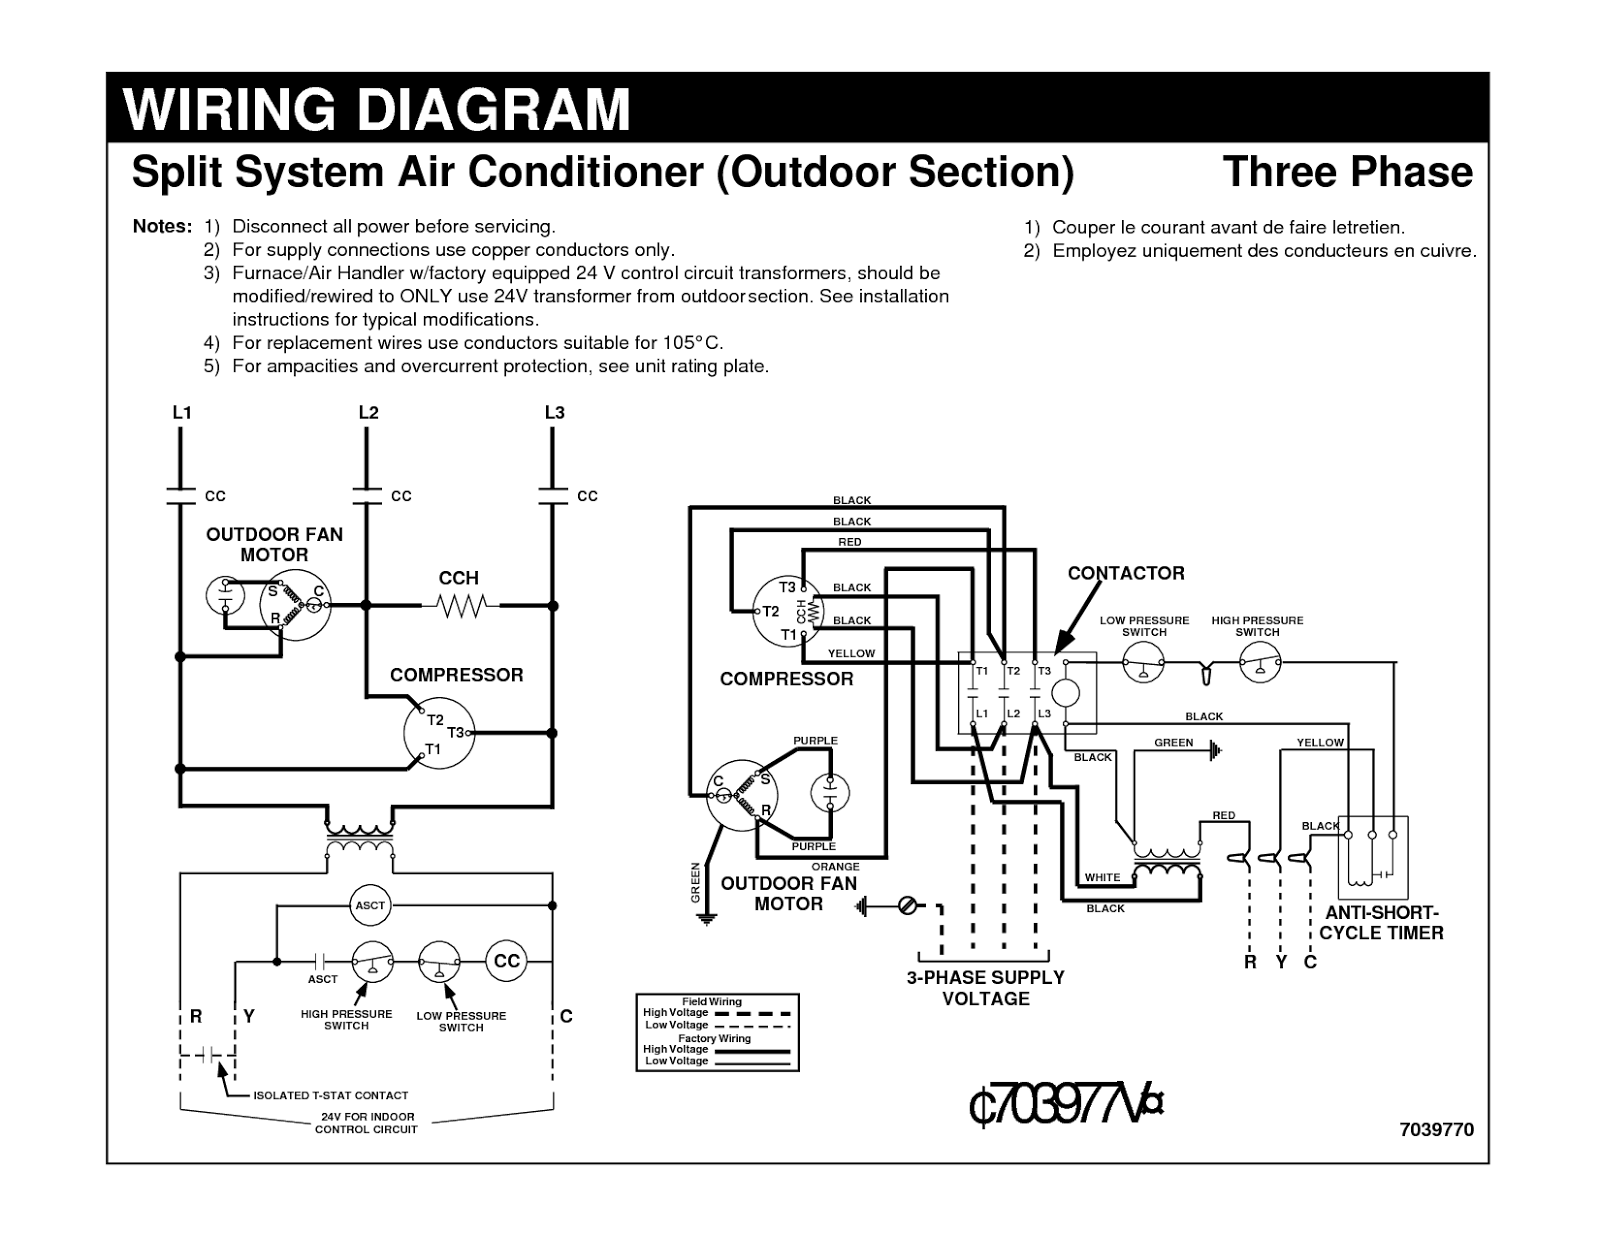 wiring+diagram+in+the+user+manual red dot air conditioner wiring diagram air handler wiring diagram electrical wiring schematic at fashall.co